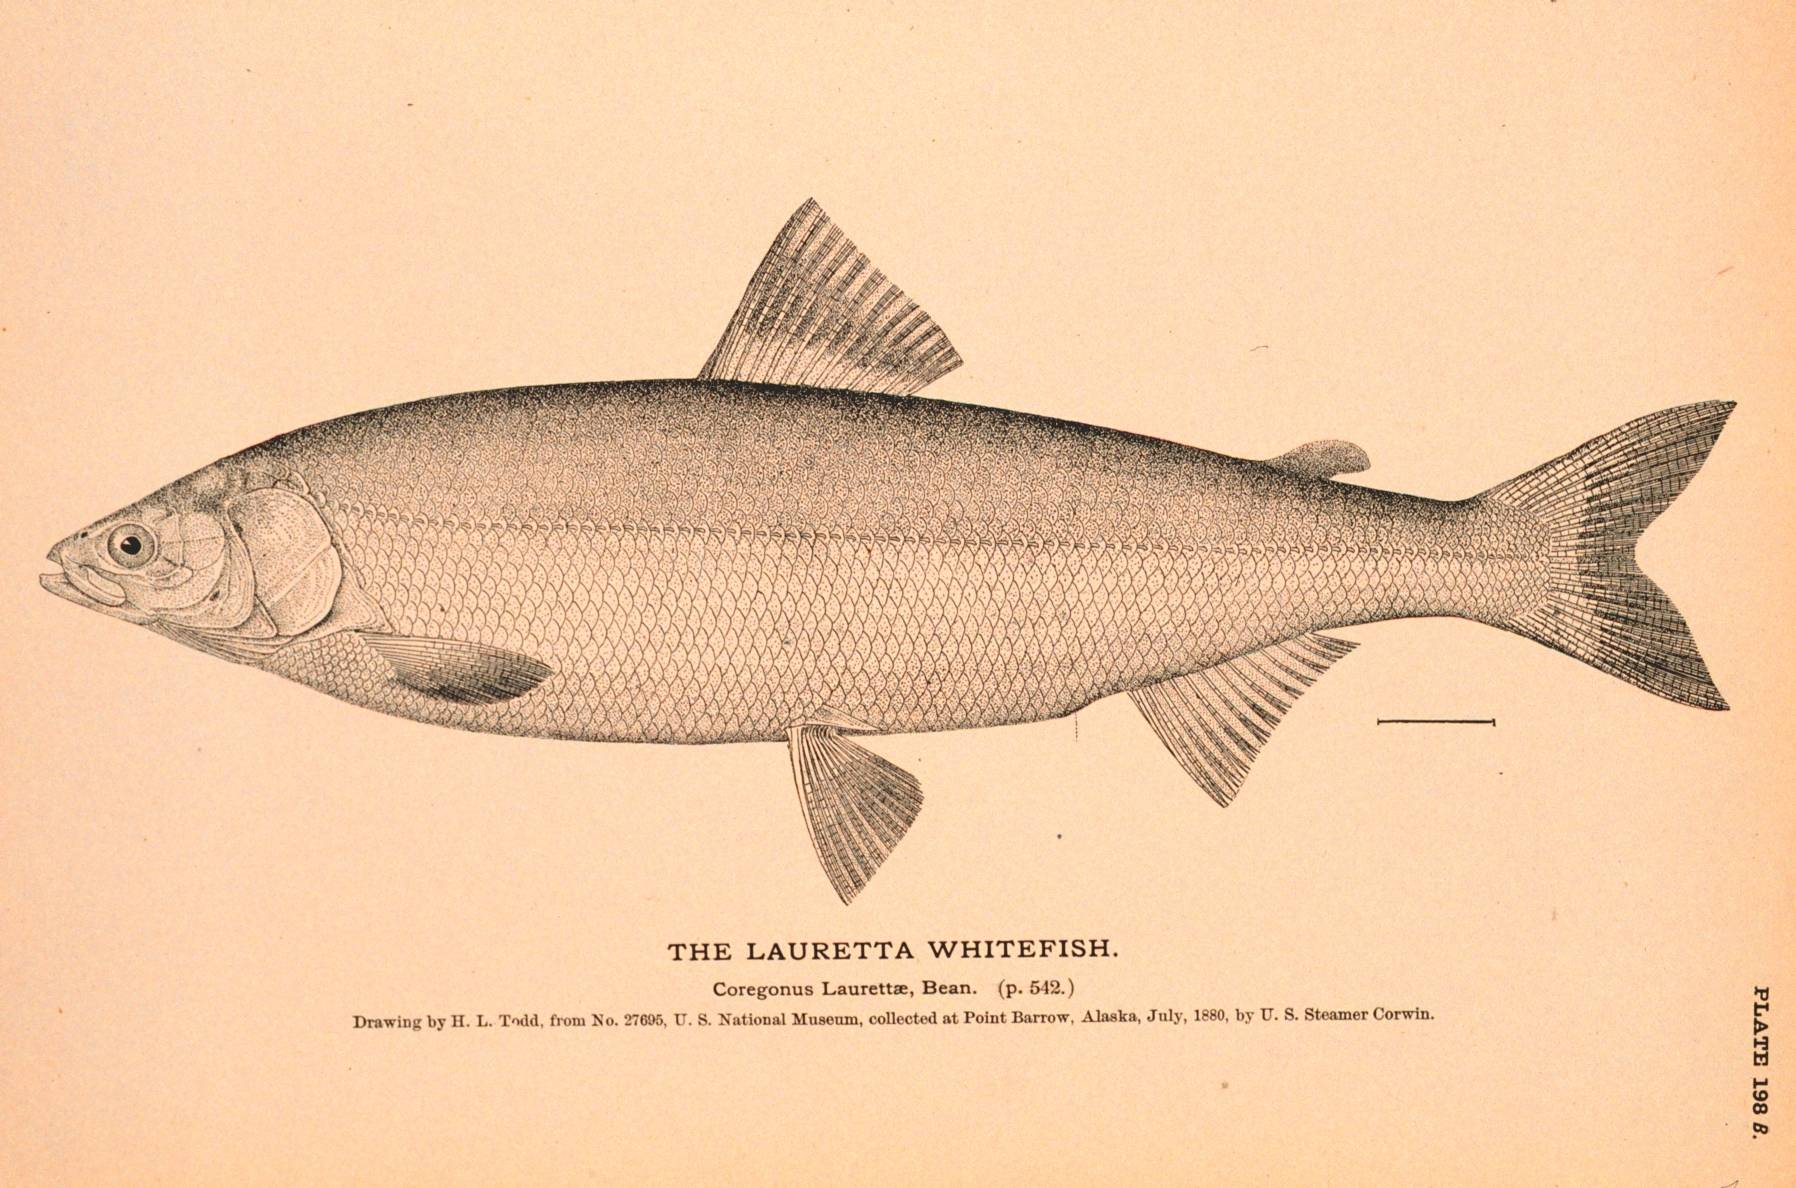 This drawing depicts a Bering cisco, also known as a Lauretta whitefish, created by H.L. Todd in July 1880. (Public Domain Image / The Natural History of Useful Aquatic Animals, NOAA photo library.